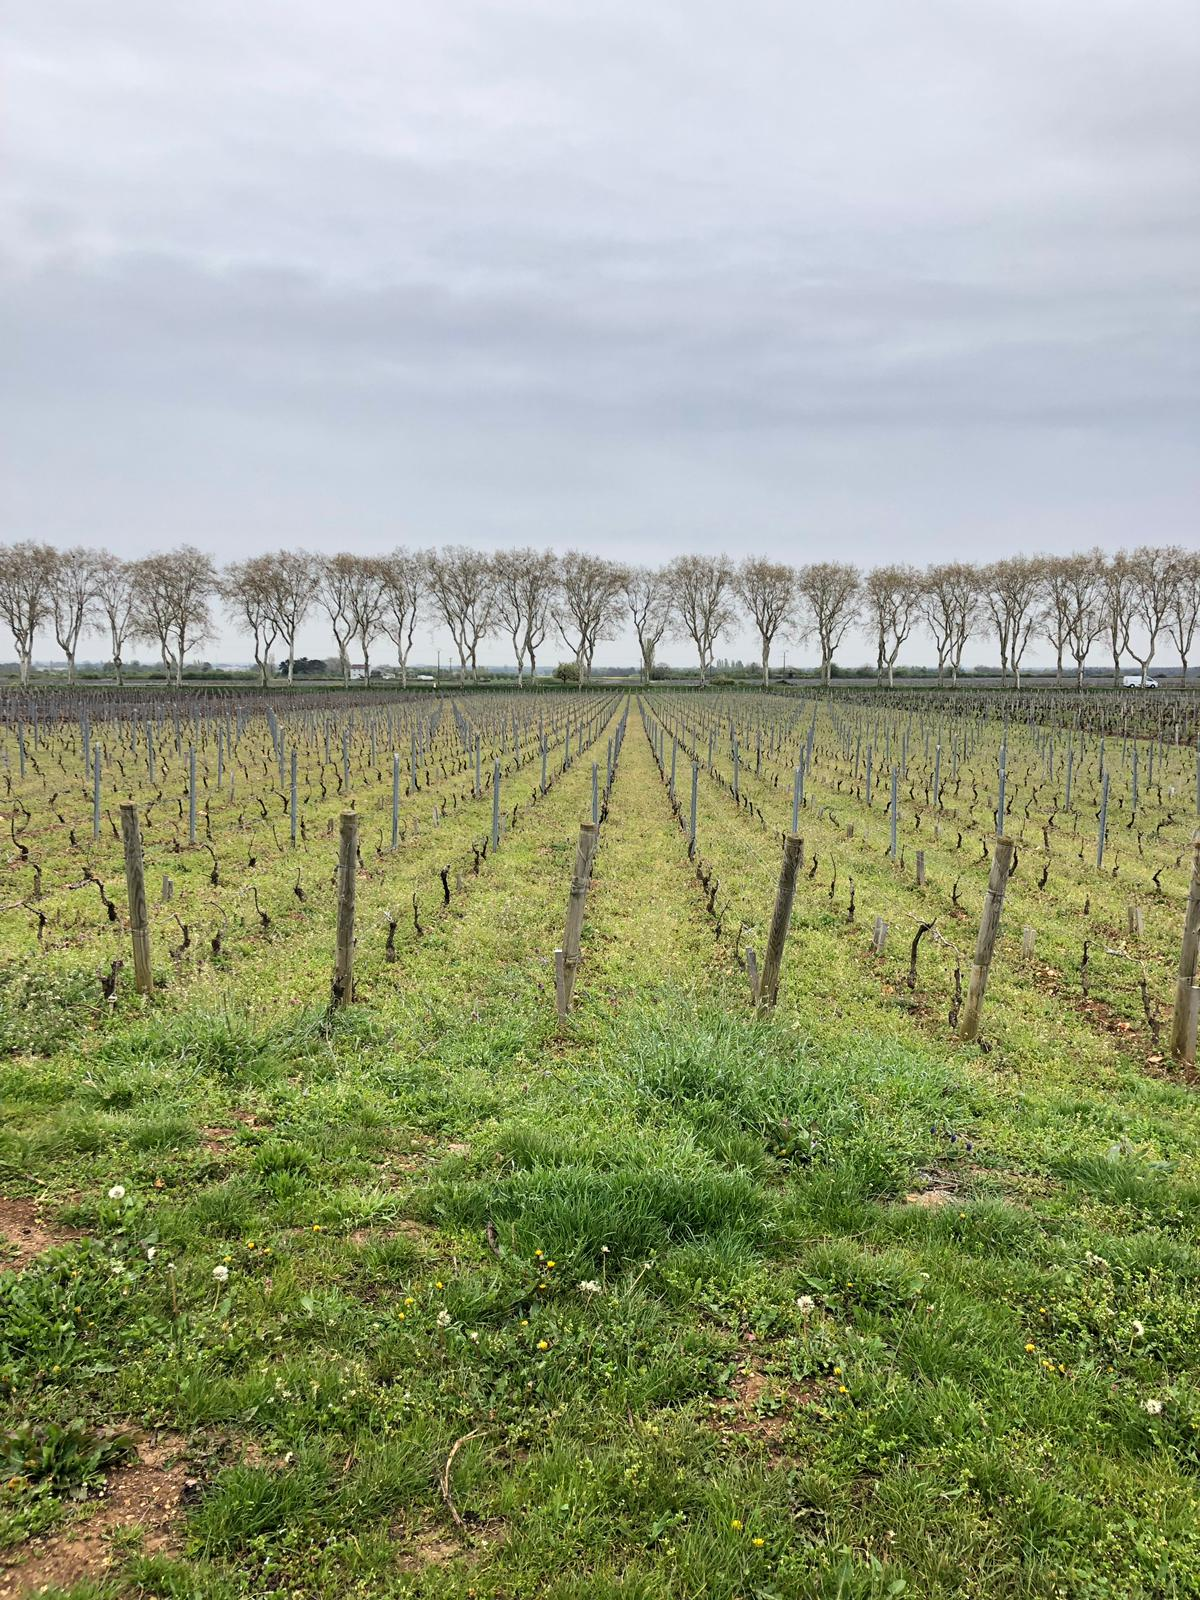 16-04-2019: The neighboring vineyard who works organic and pesticide free